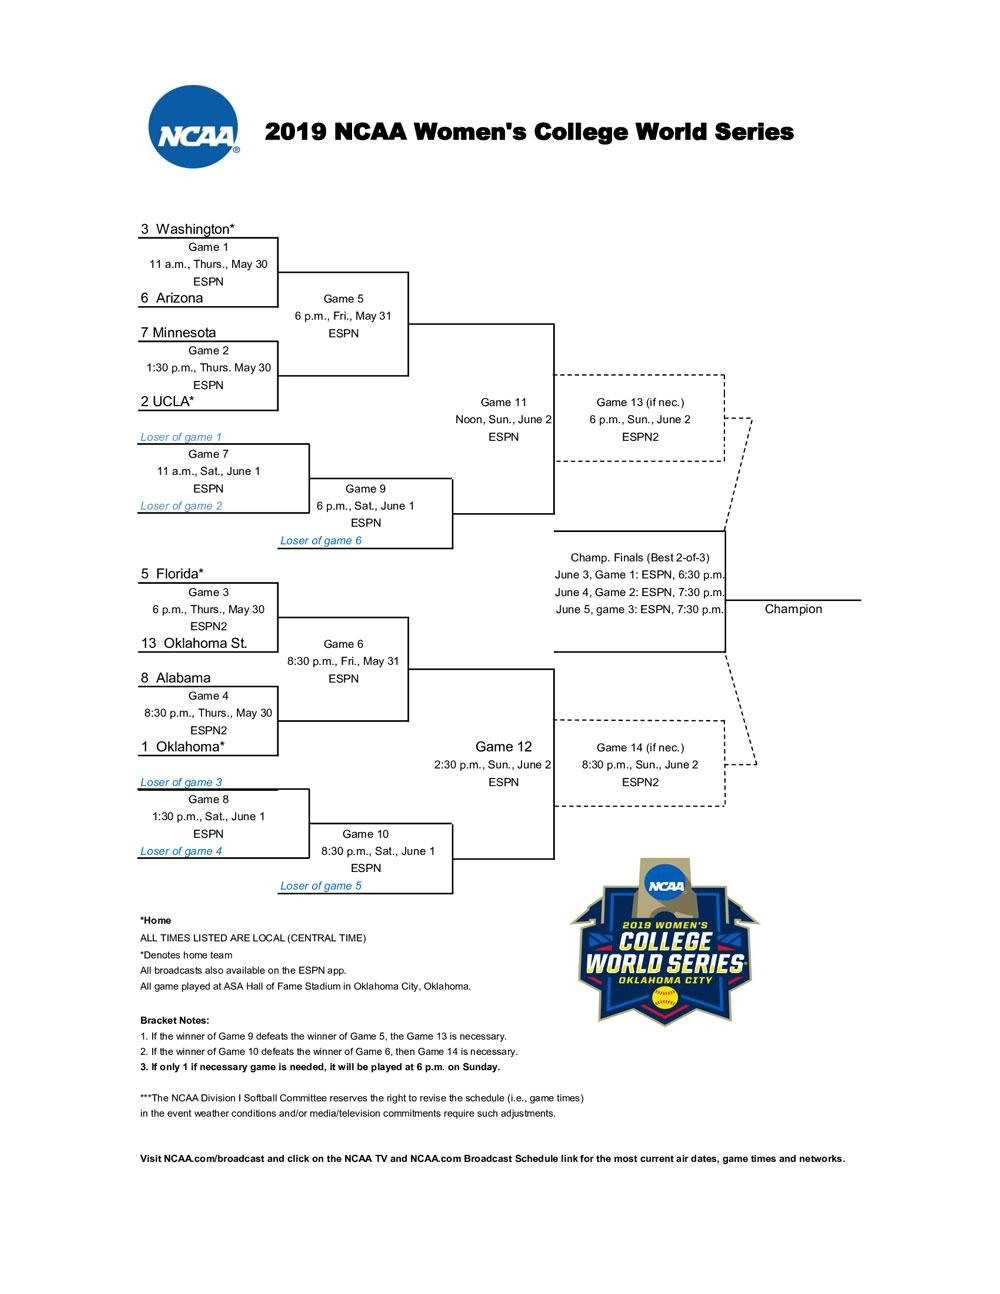 The 2019 Women's College World Series bracket in the NCAA Softball Tournament